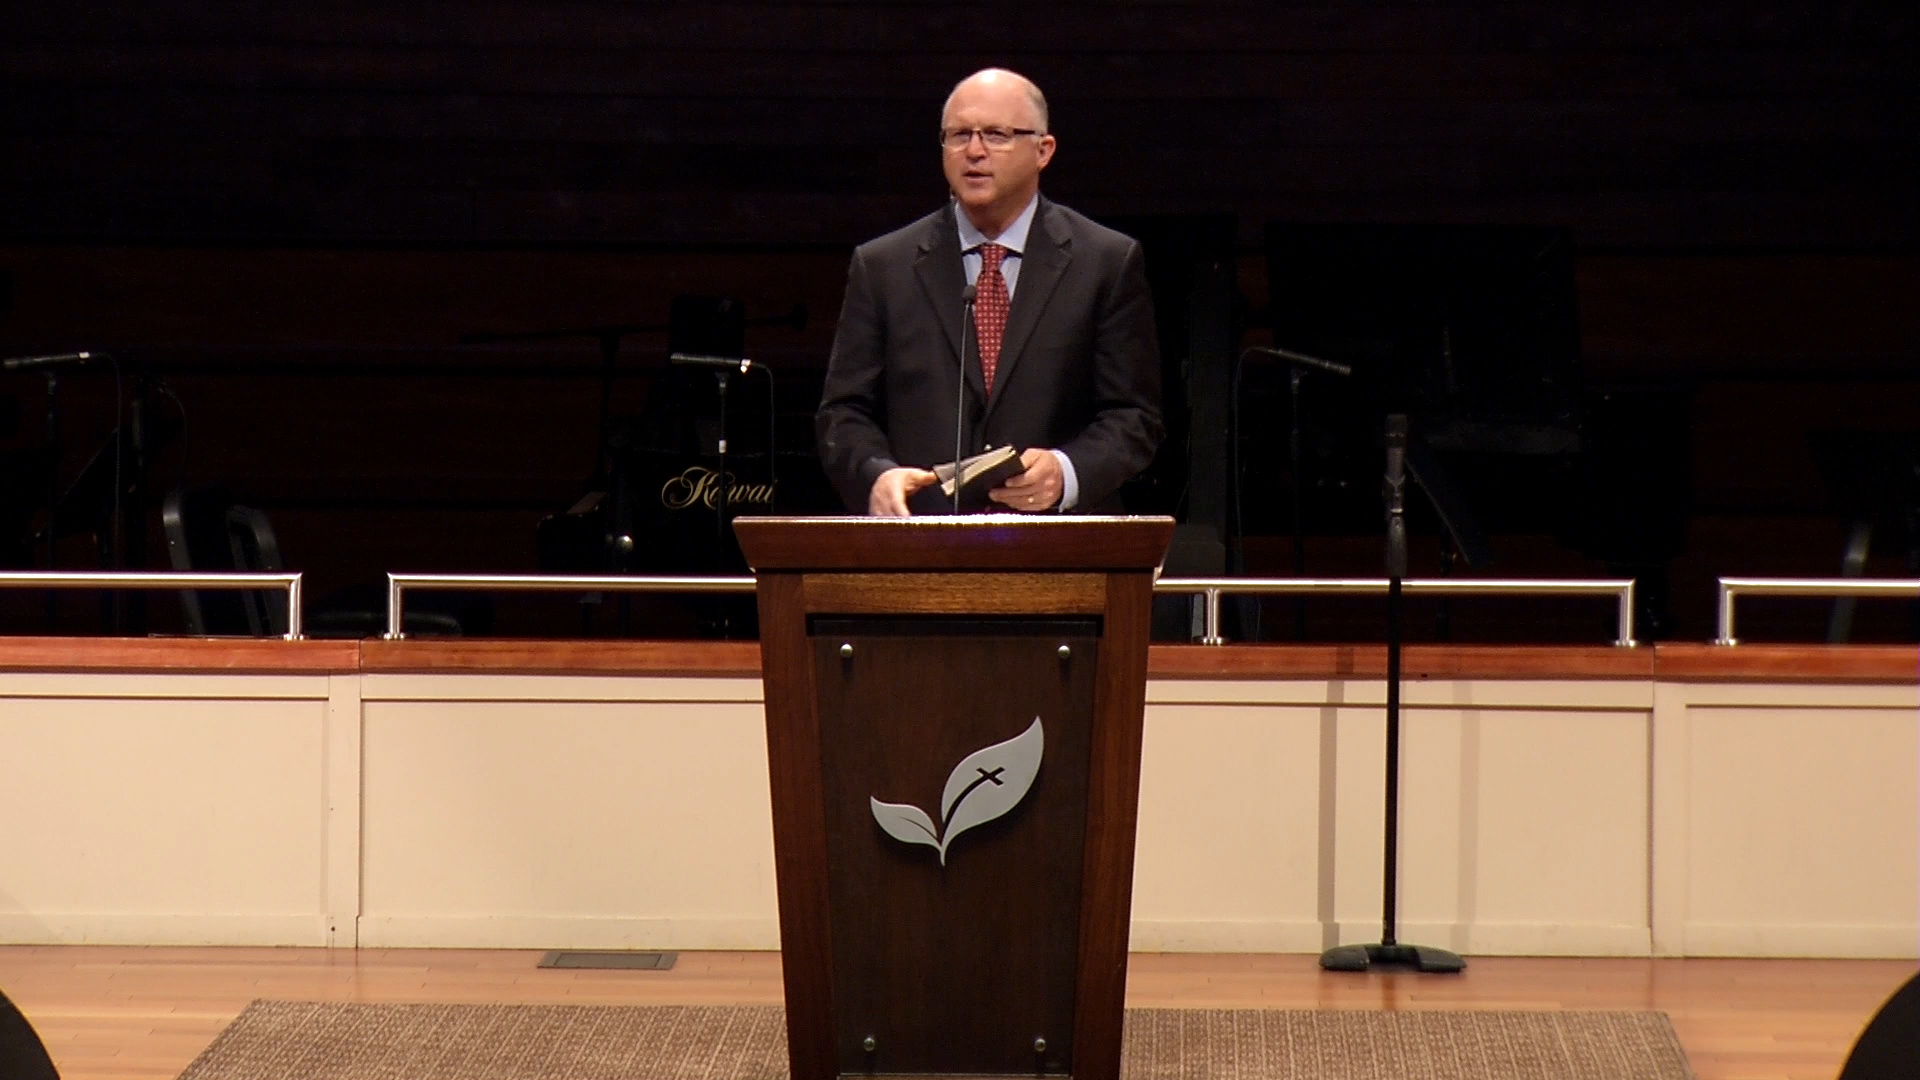 Pastor Paul Chappell: The Strength of Grace